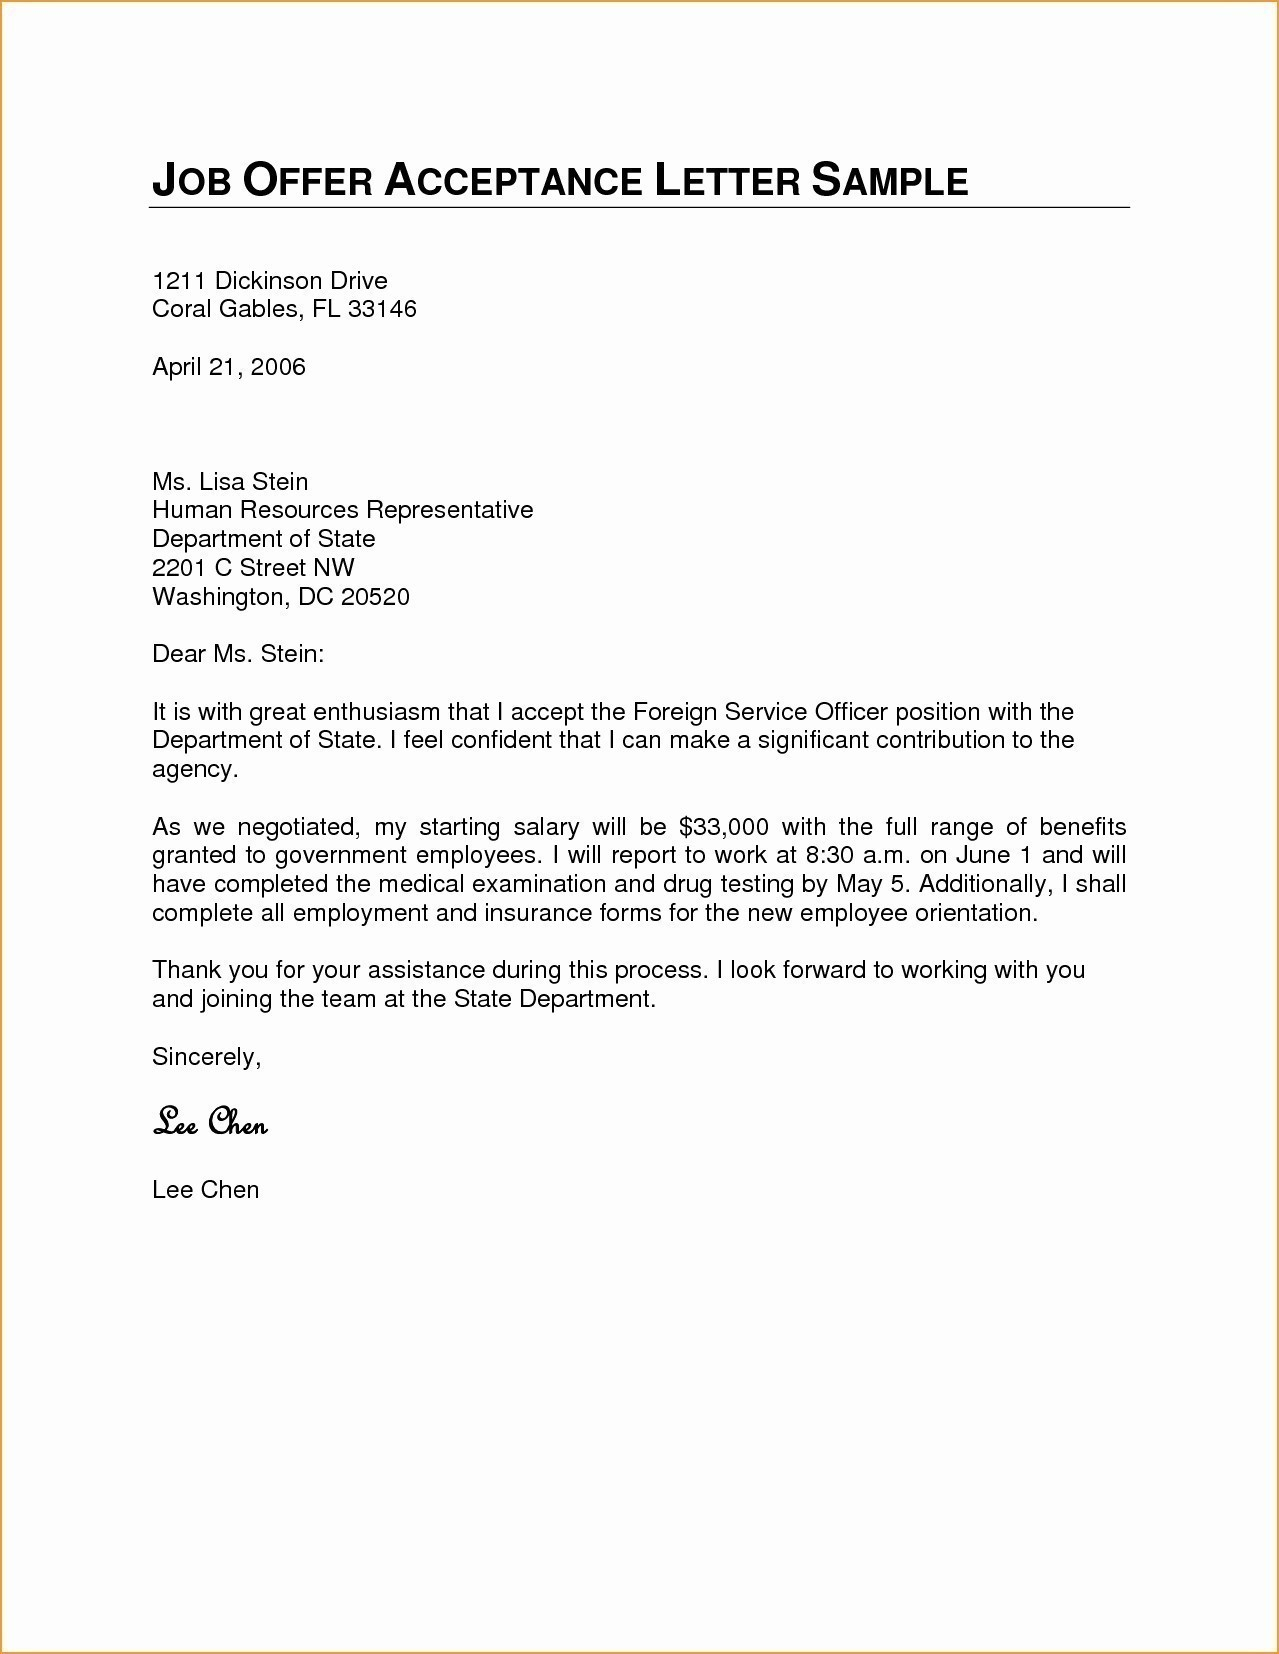 Job Offer Acceptance Letter Template - Letter Accepting A Job Fer Fresh Letters Acceptance Job Fer